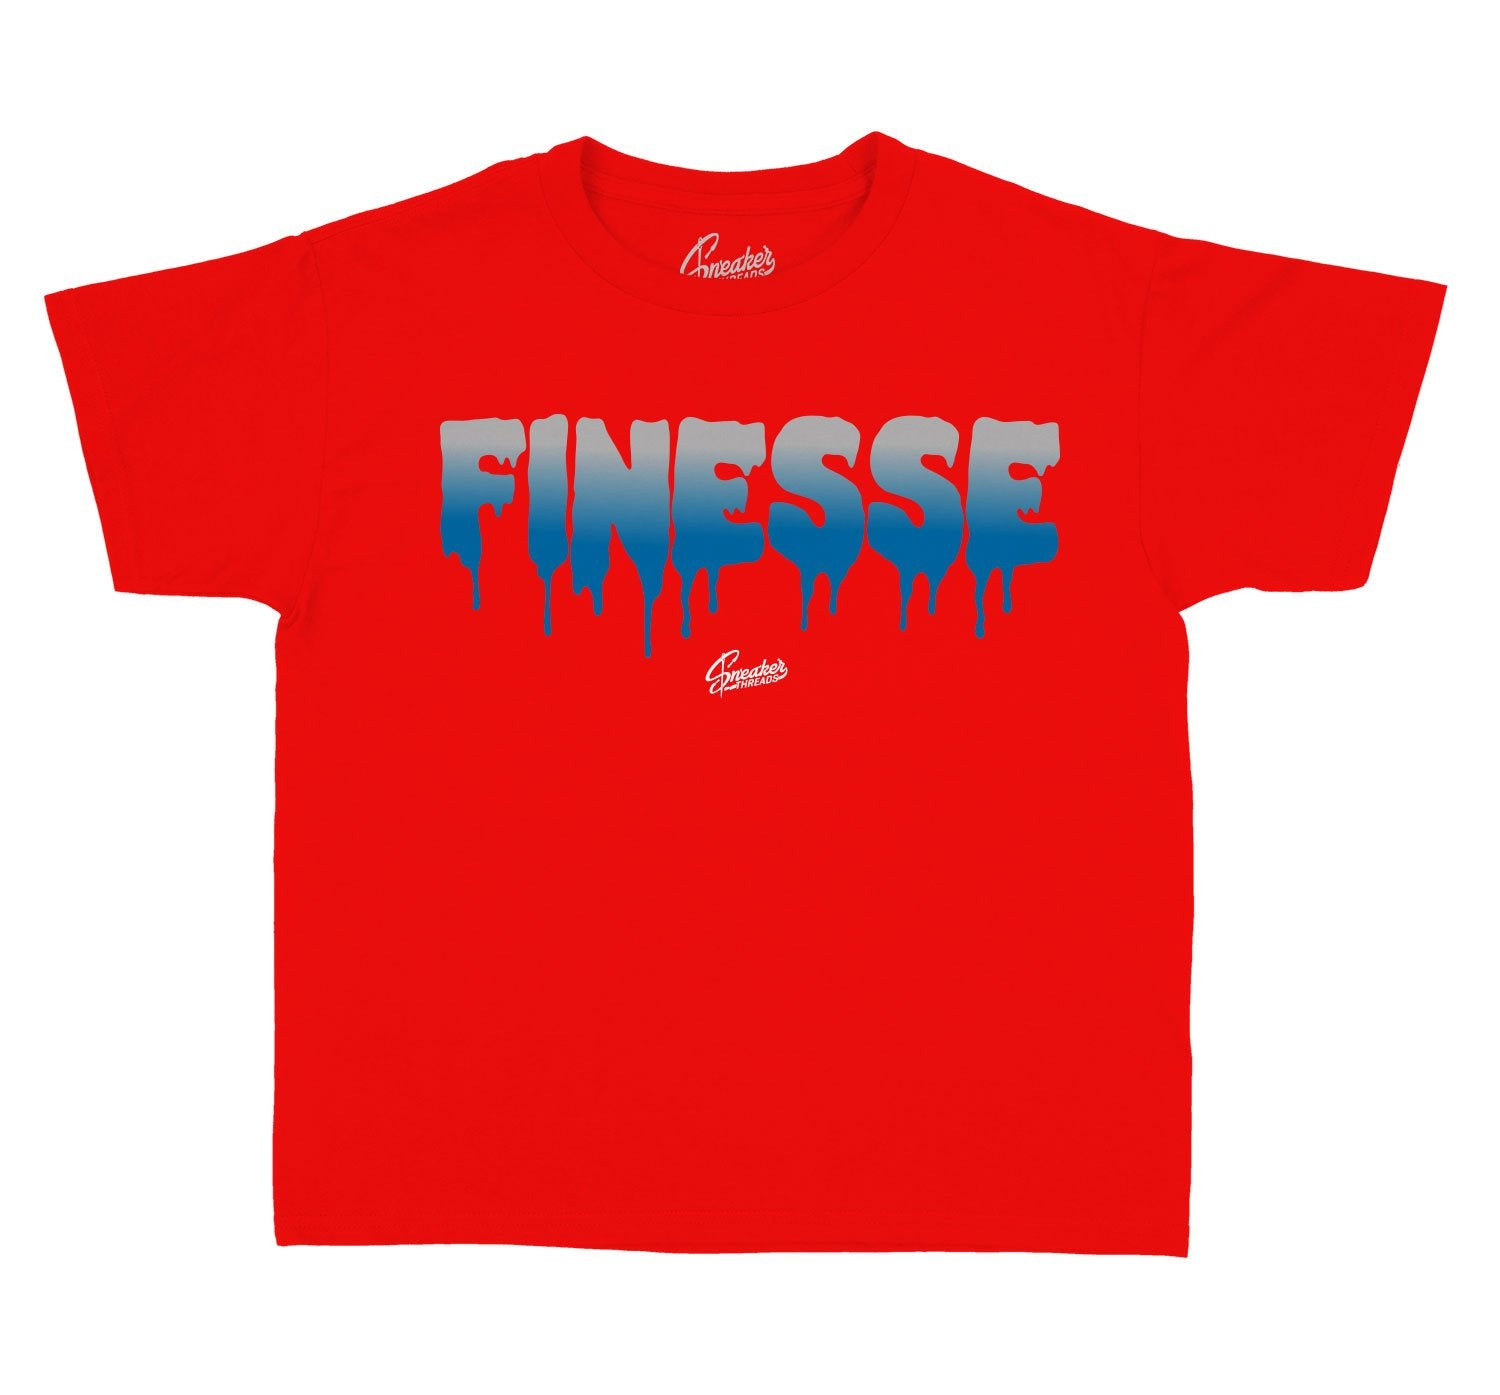 Jordan Finesse 4 What The Four Sneaker shirts